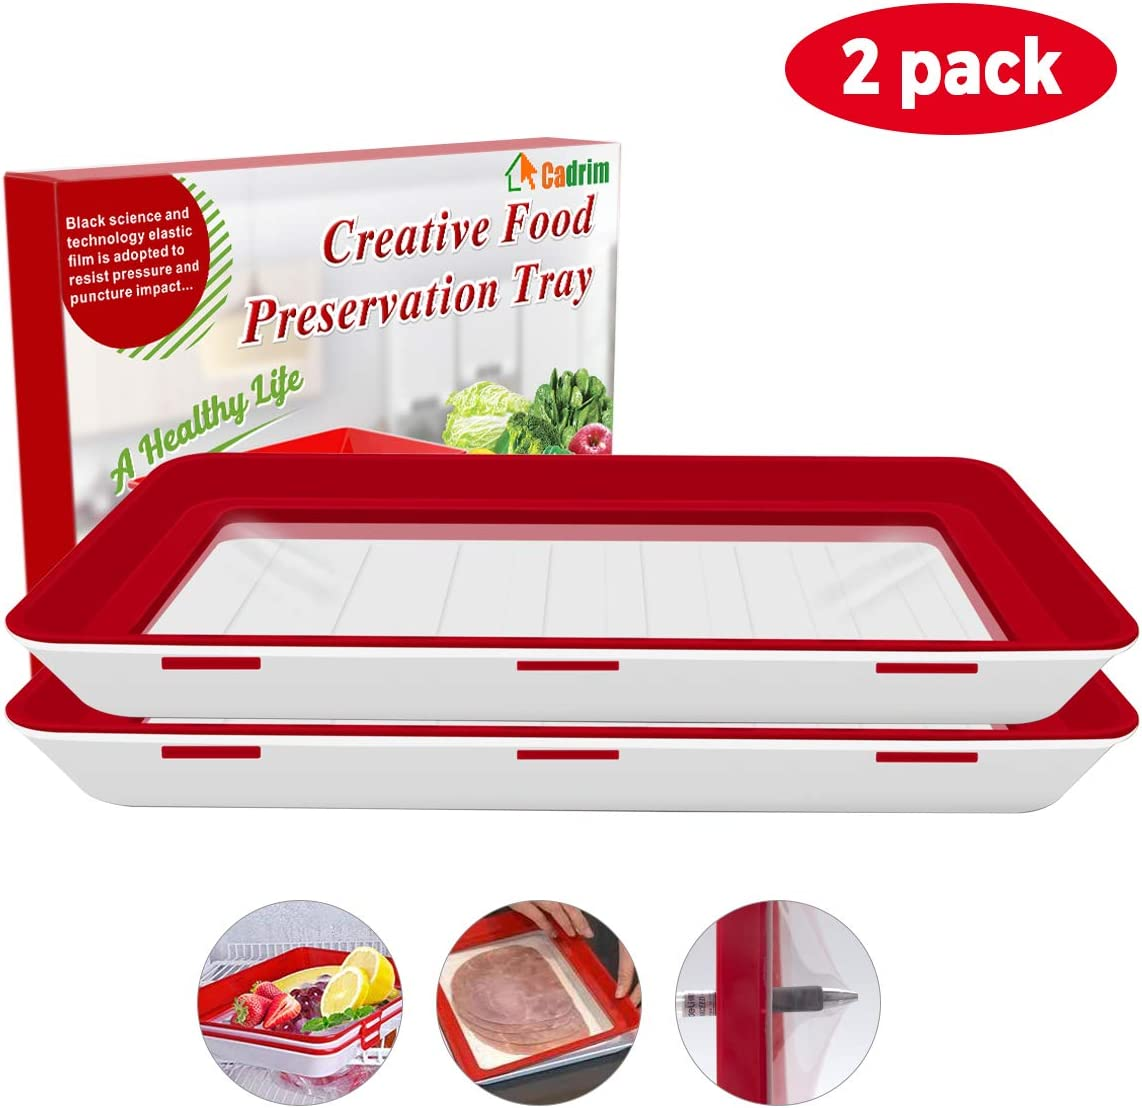 Cadrim Food Preservation Tray, Stackable BPA Free Plastic Food Storage Container with Elastic Reusable Locking Lid for Refrigerator and Freezer Flat Food ONLY (Red, Square, 2 Pack)